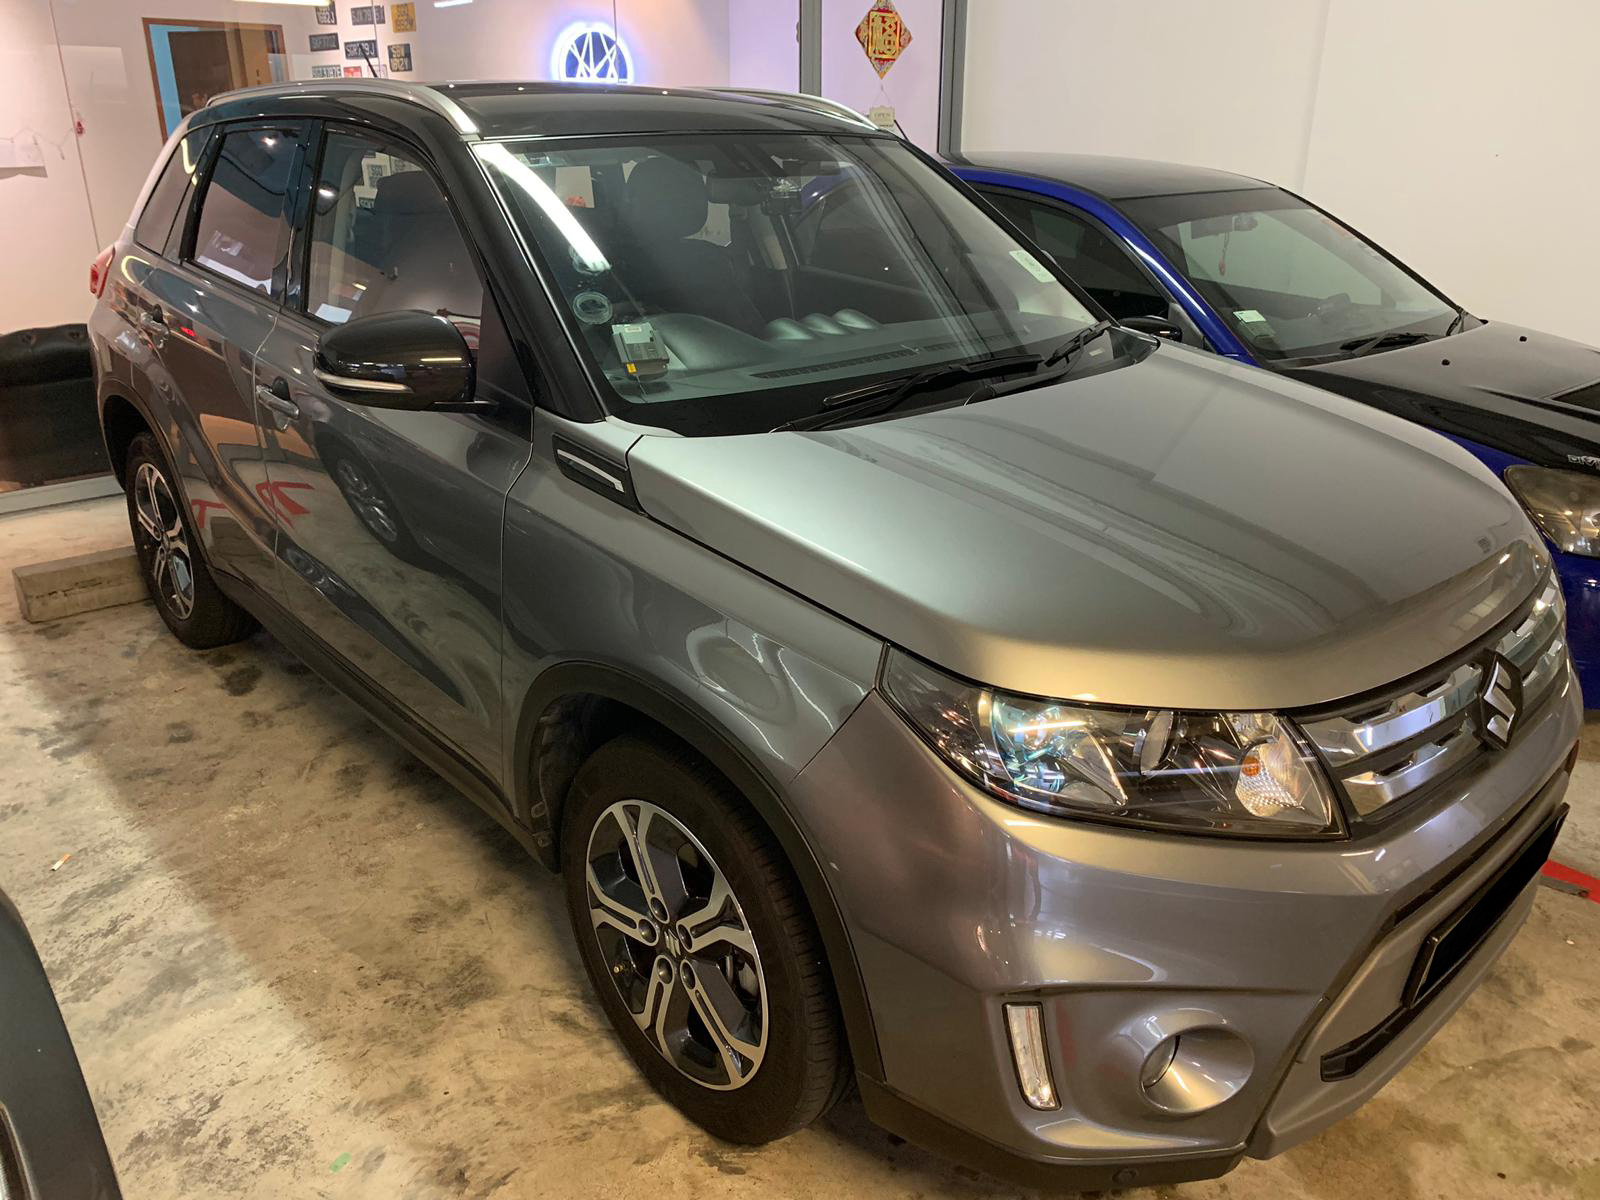 Suzuki Vitara [Gery] (For Rent)